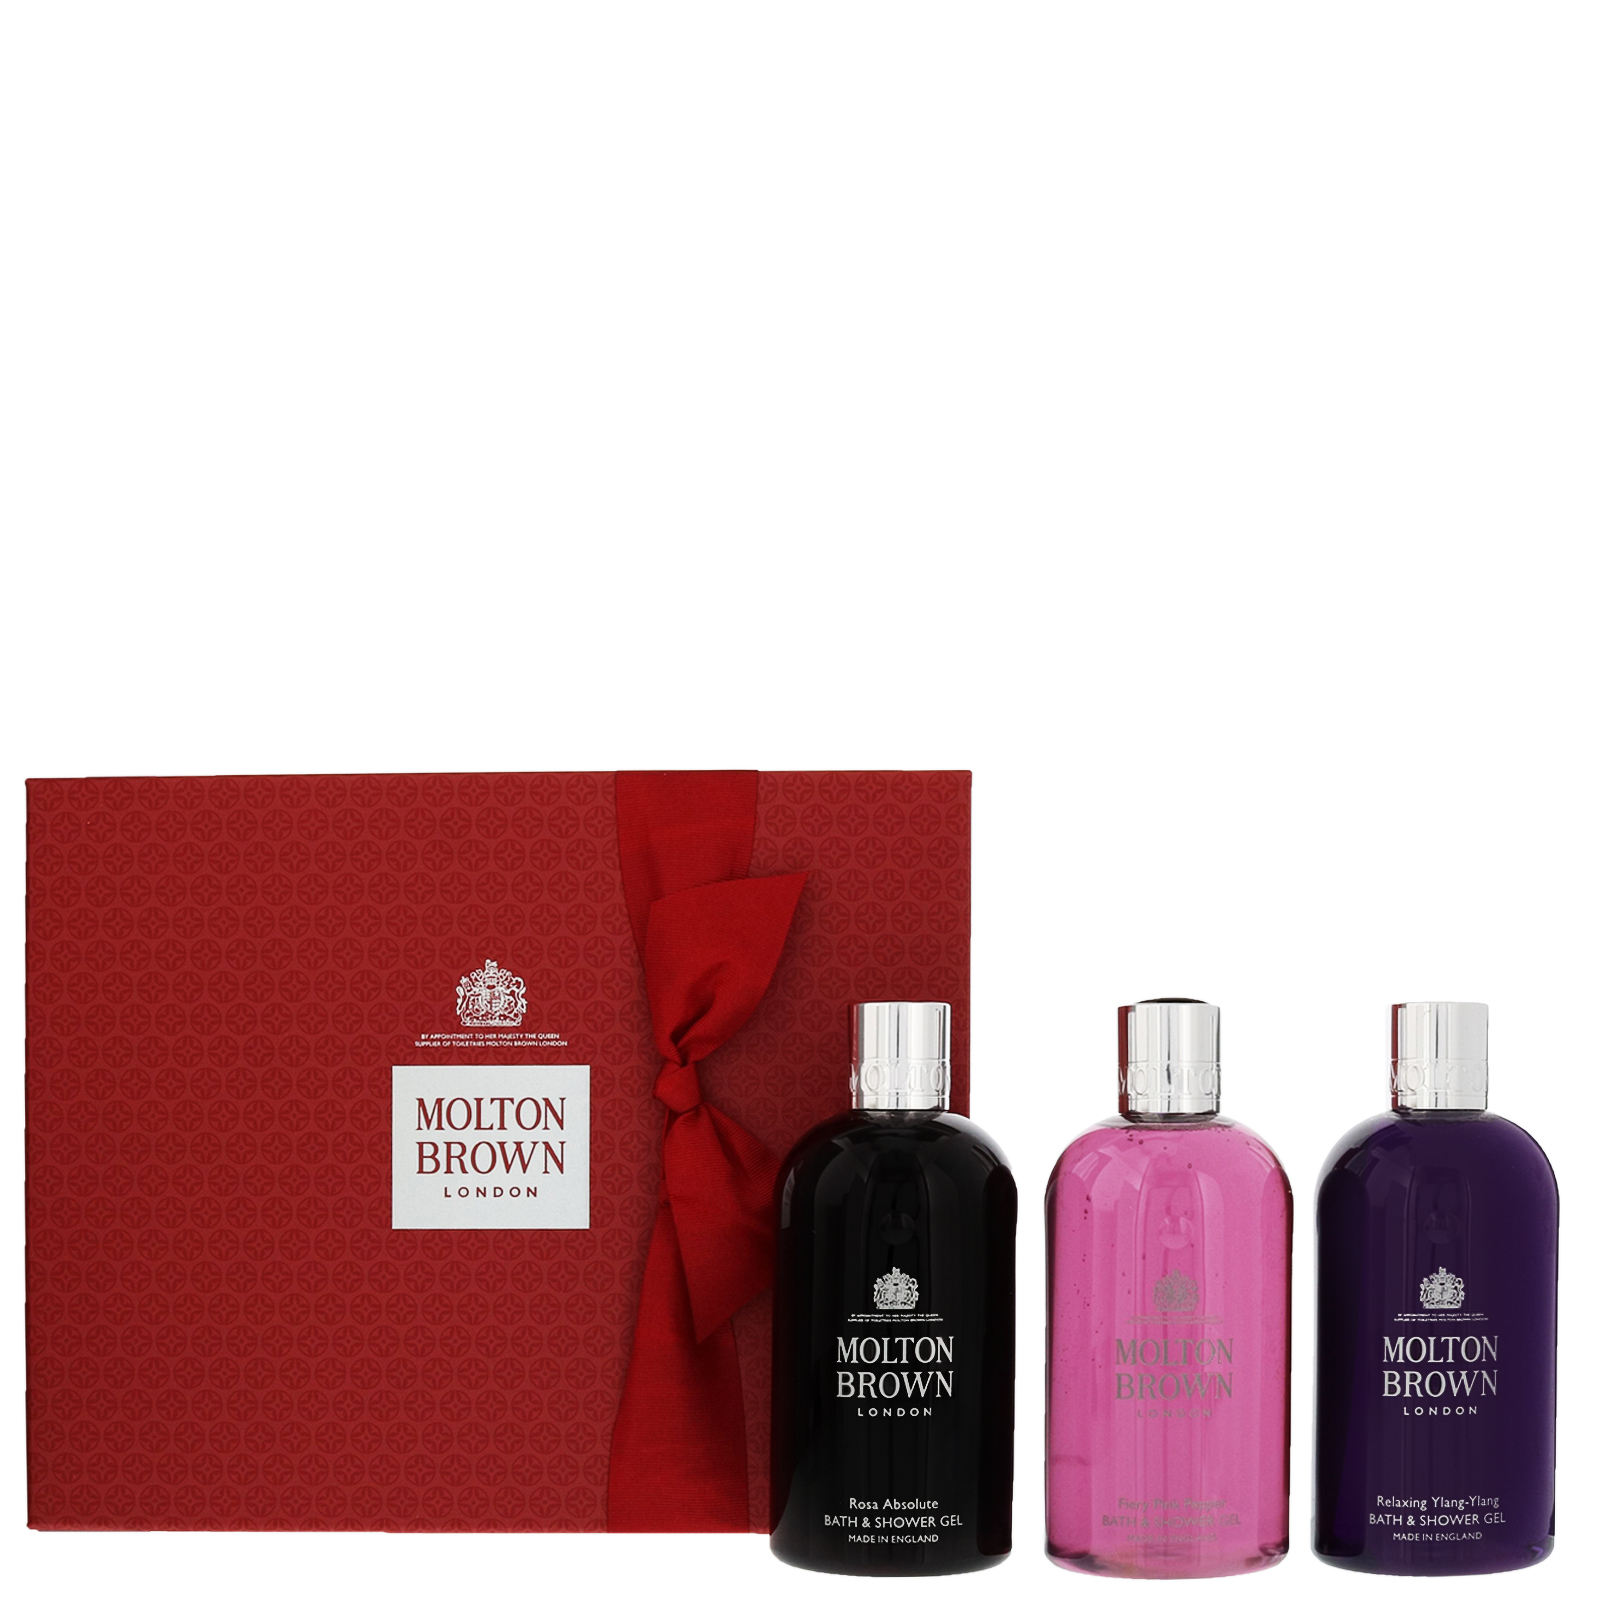 Molton Brown Gifts & Sets Divine Moments Bathing Gift Set